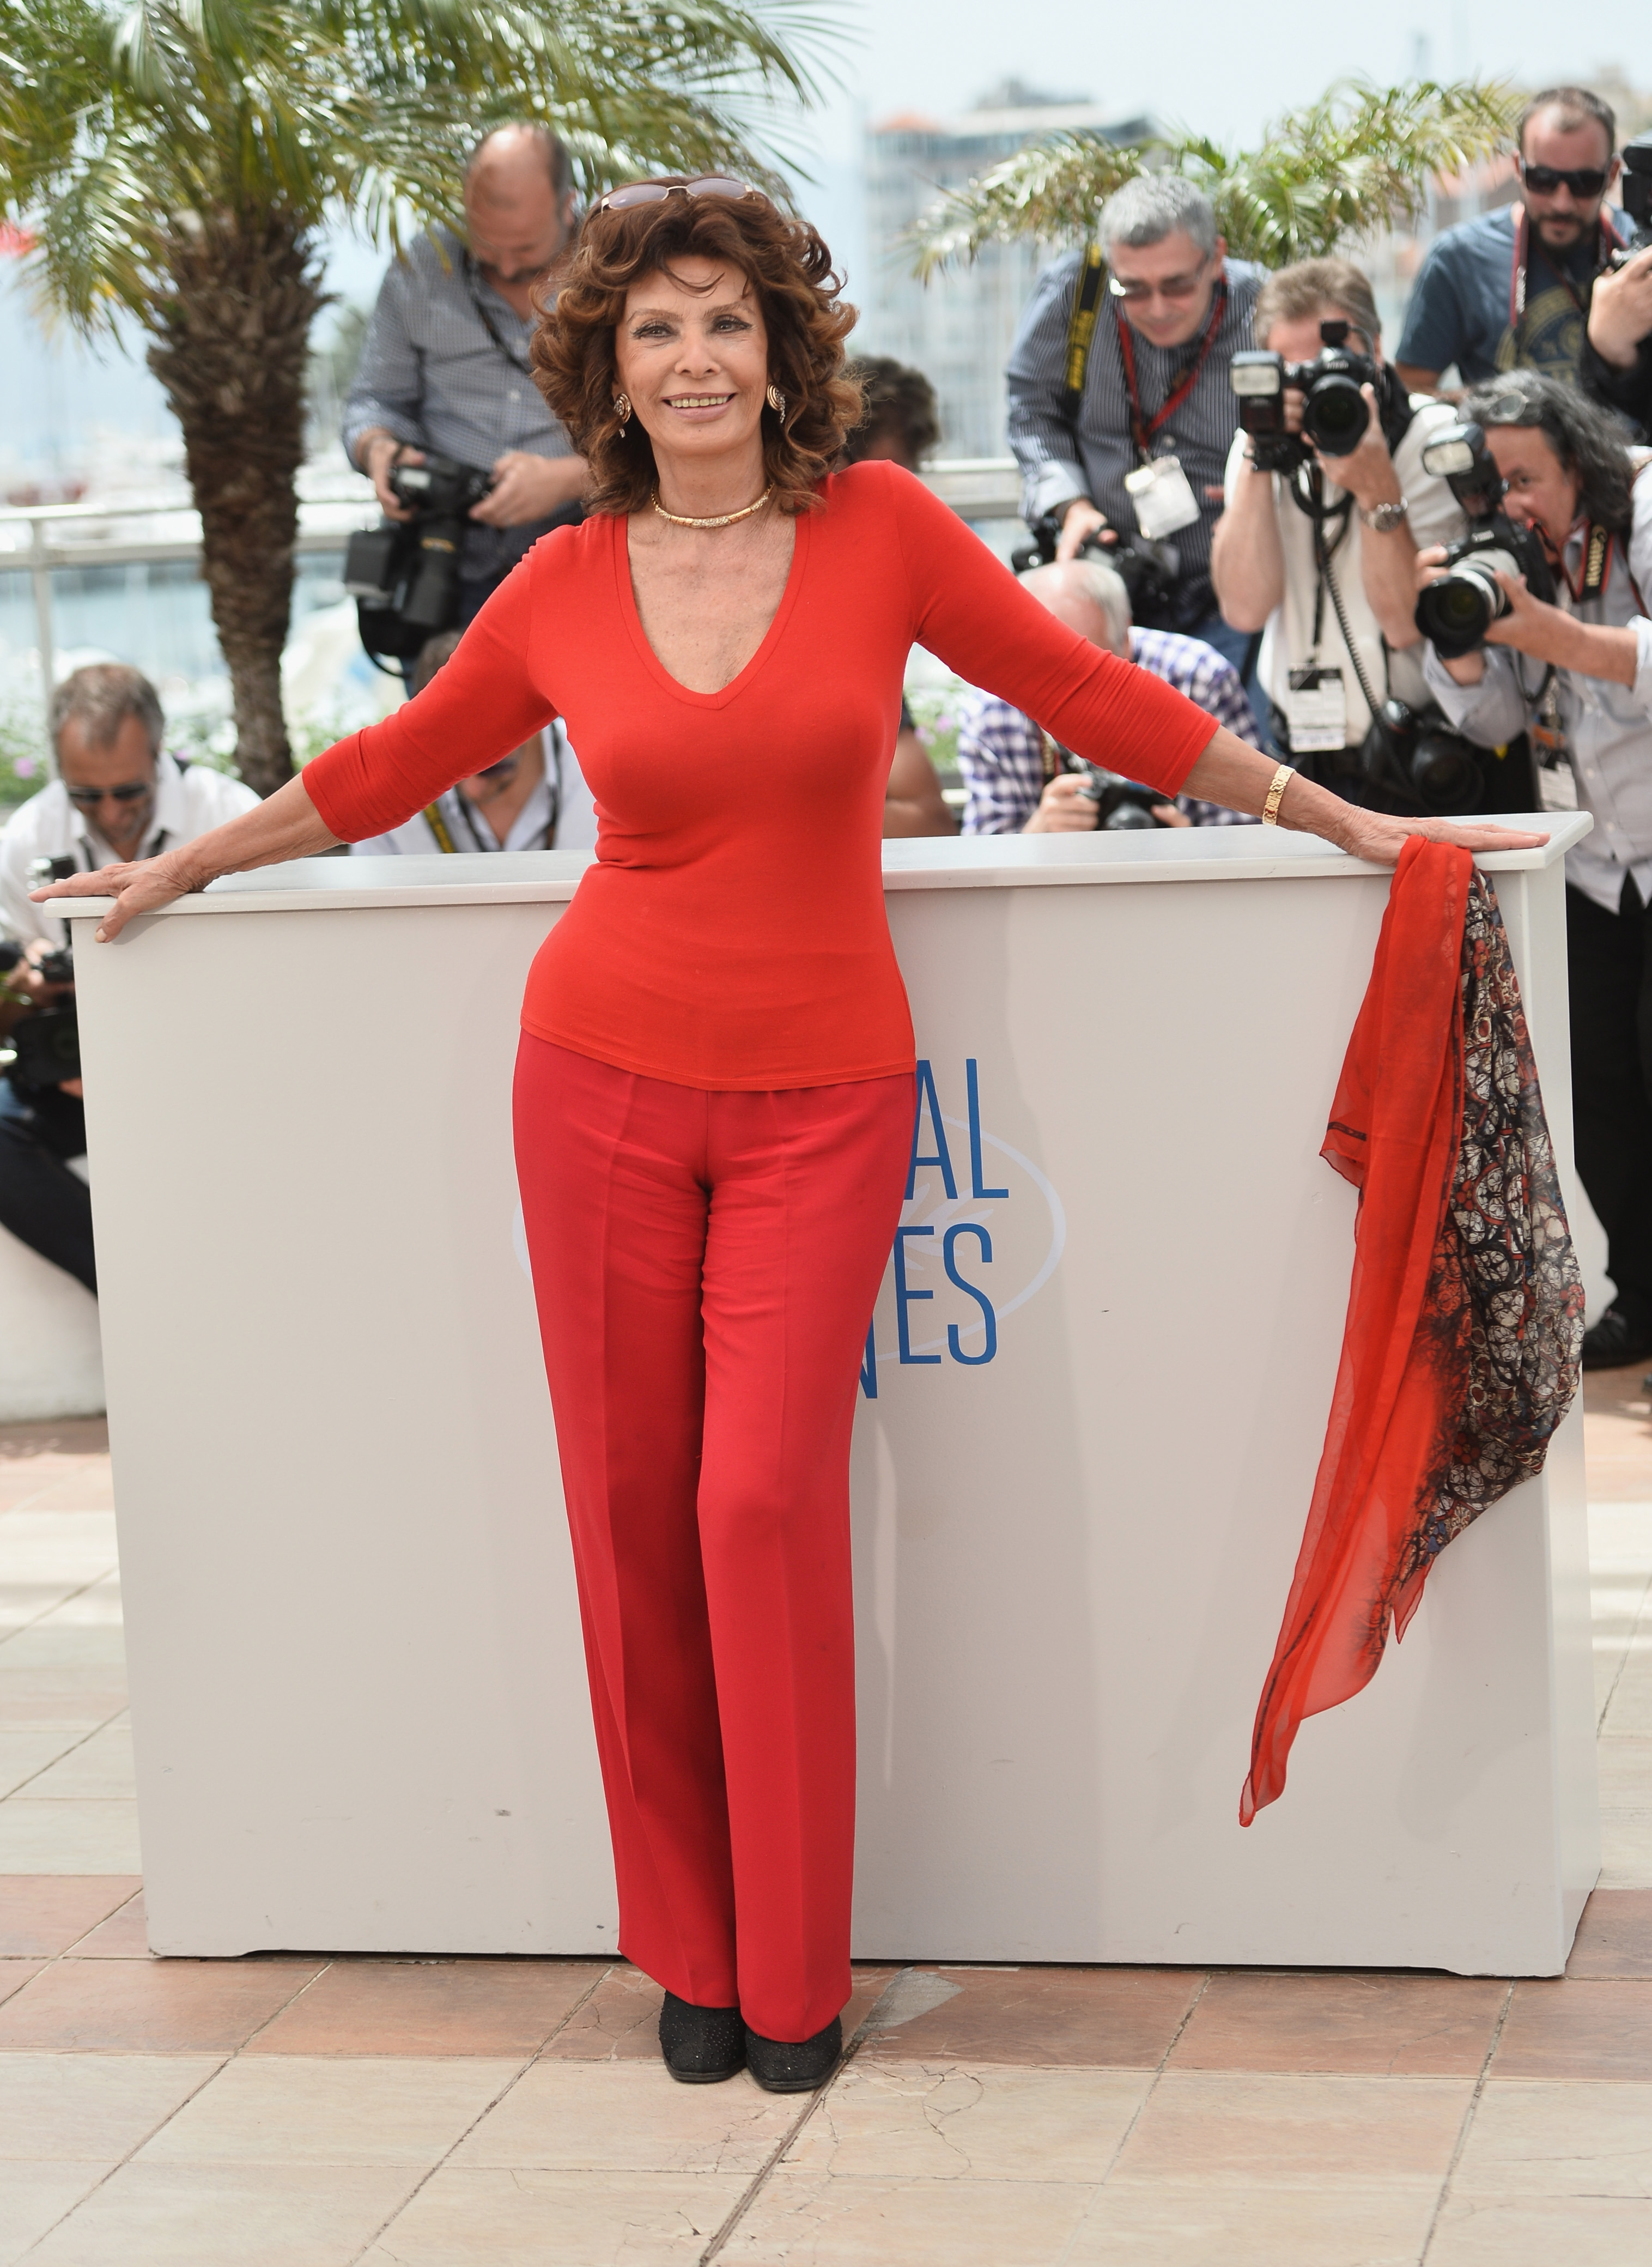 Sophia Loren, 79, strikes a pose Wednesday at the Cannes Film Festival in France.